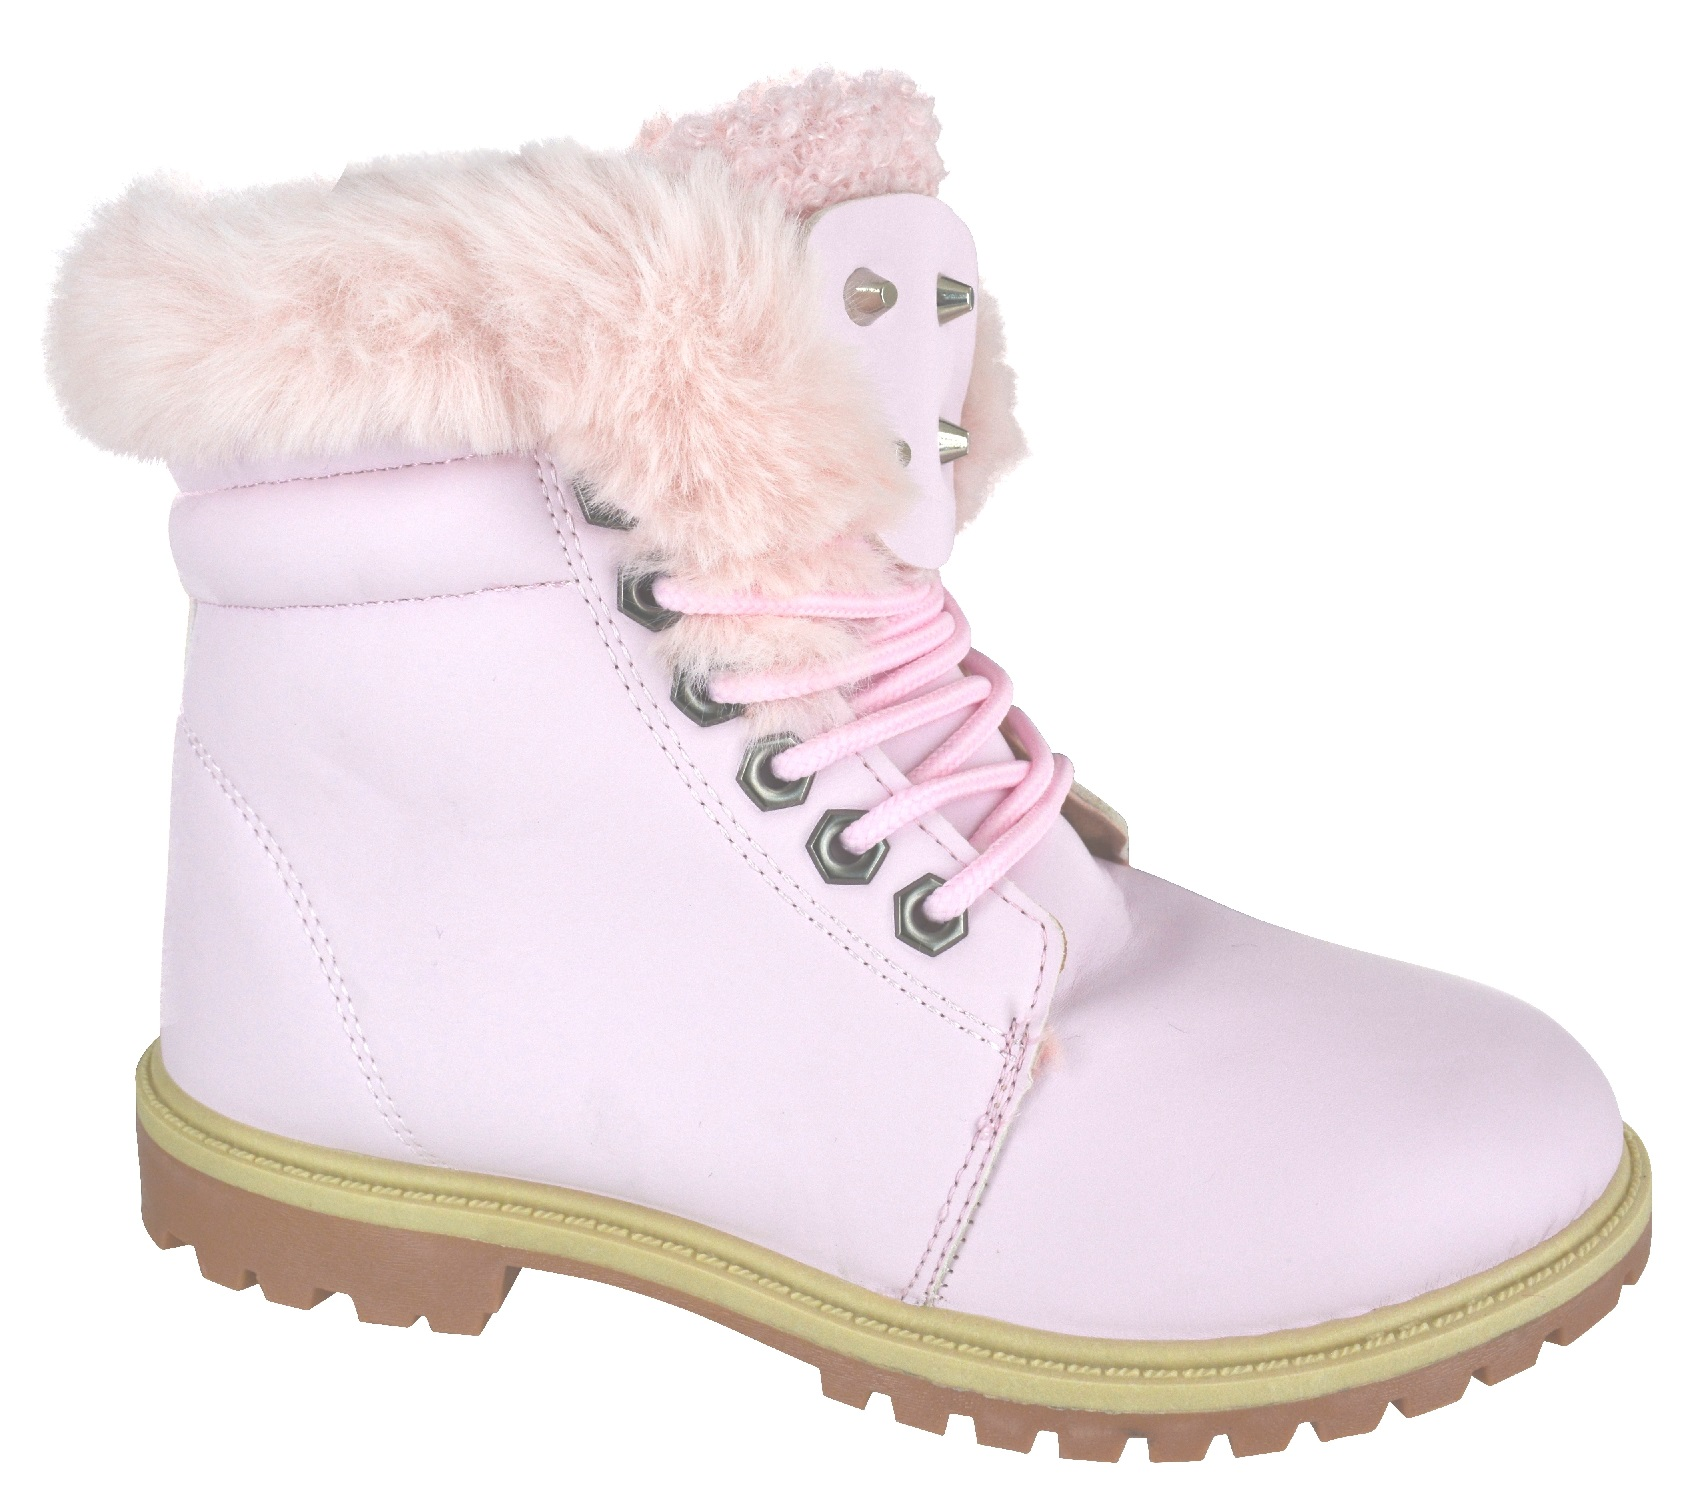 a03a5209518 Details about NEW LADIES WOMENS WINTER WARM ANKLE FUR LINED GRIP FLAT SOLE  SNOW BOOTS SIZE 3-8